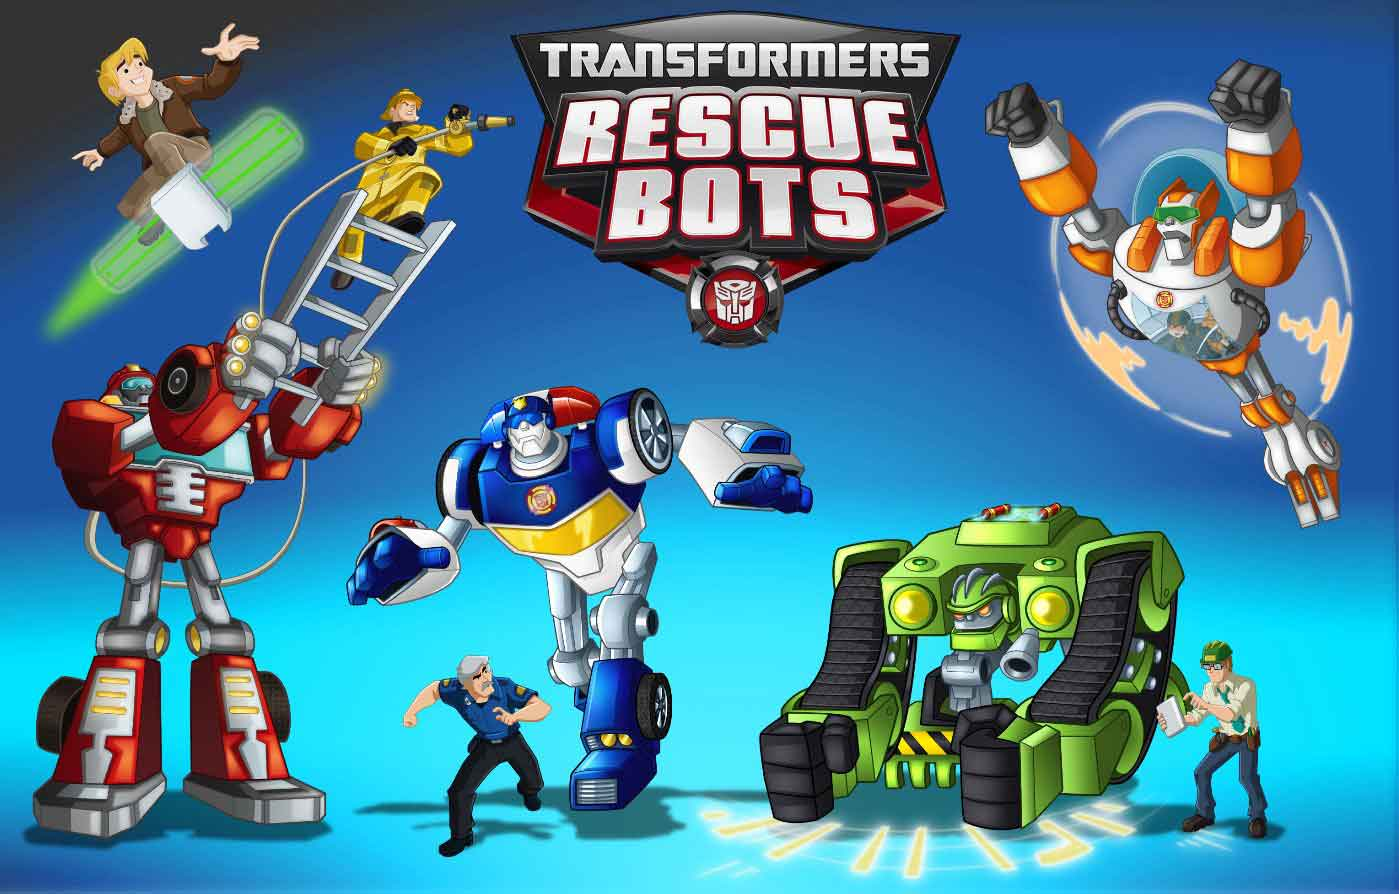 Transformers Rescue Bots